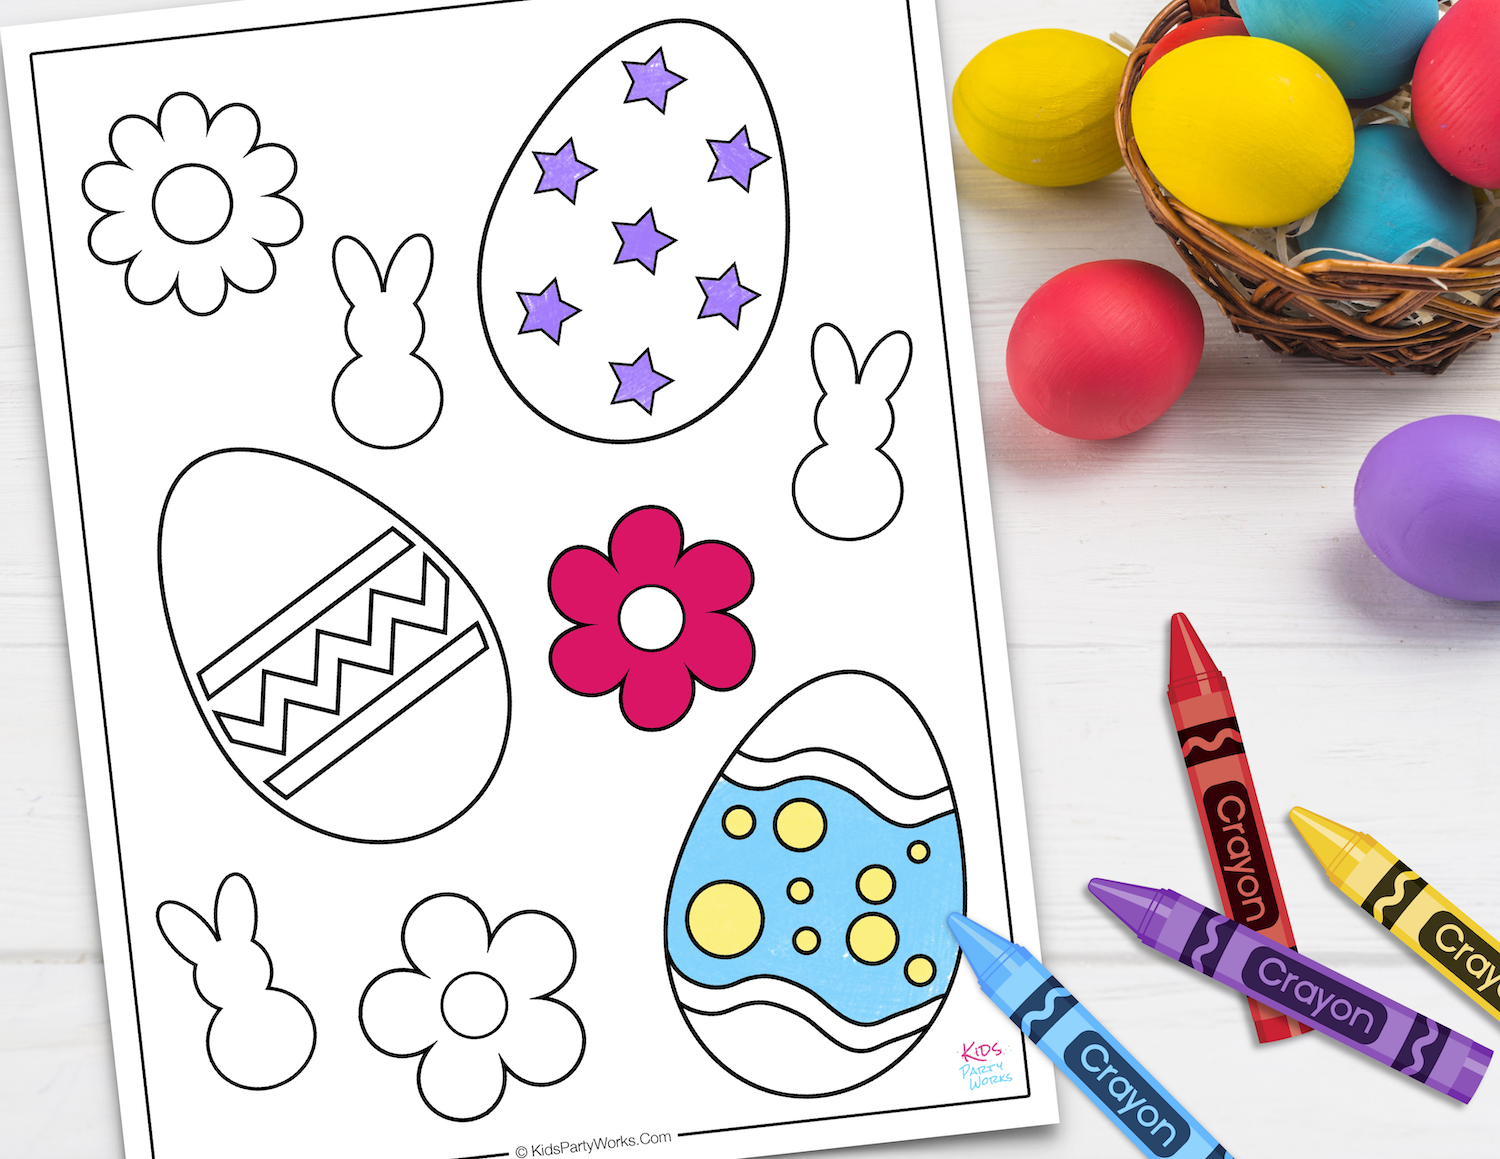 Free Easter Egg Coloring Page. KidsPartyWorks.Com